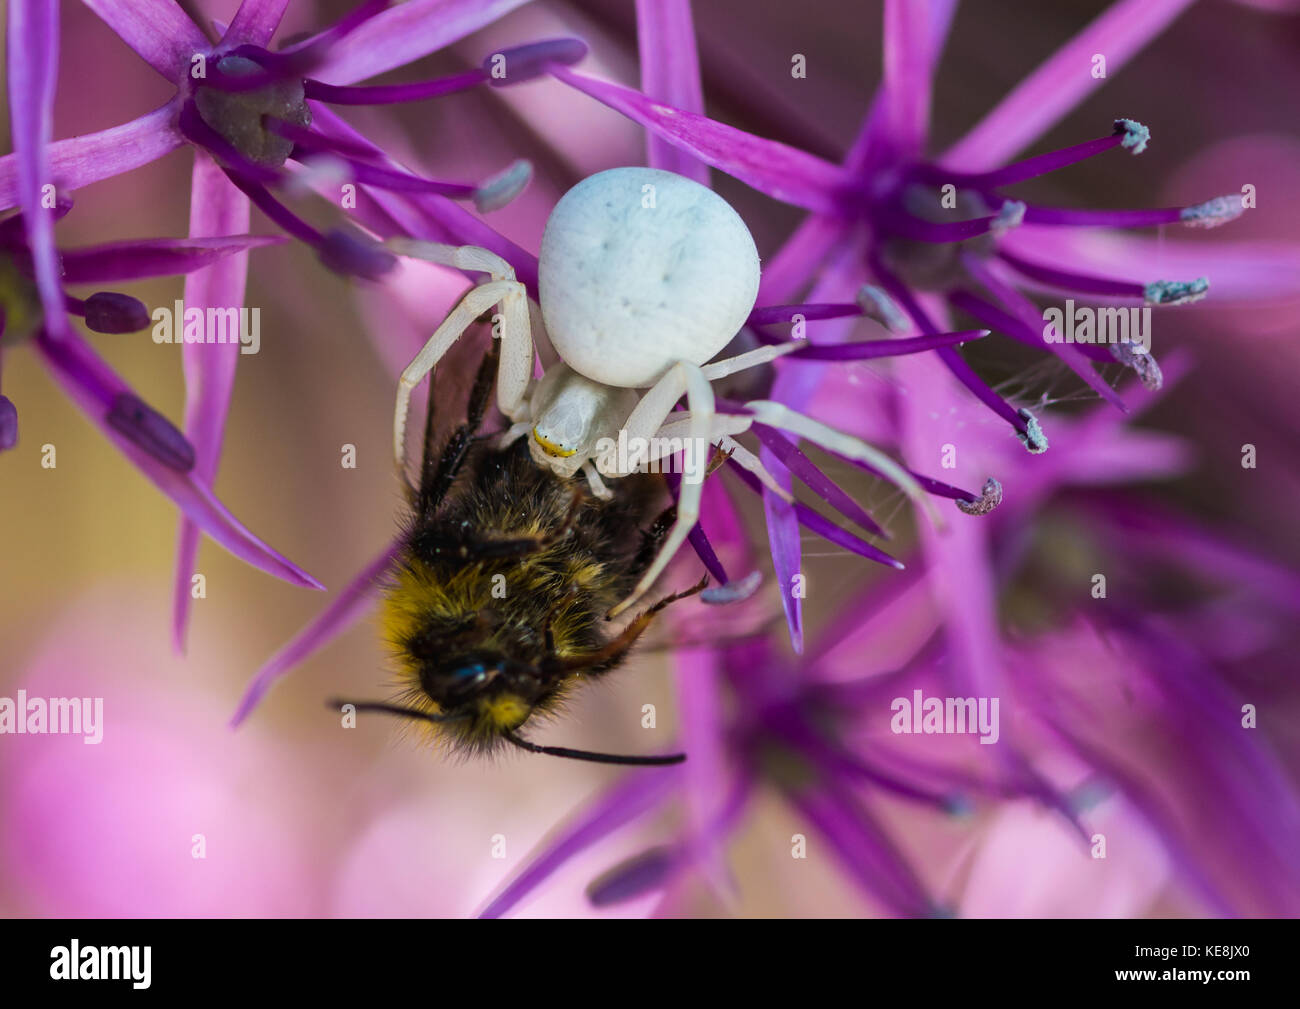 Crab spider preying bumble bee garden spiders spiders flower spiders - A Macro Shot Of A Crab Spider Feeding On A Bumblebee Stock Image